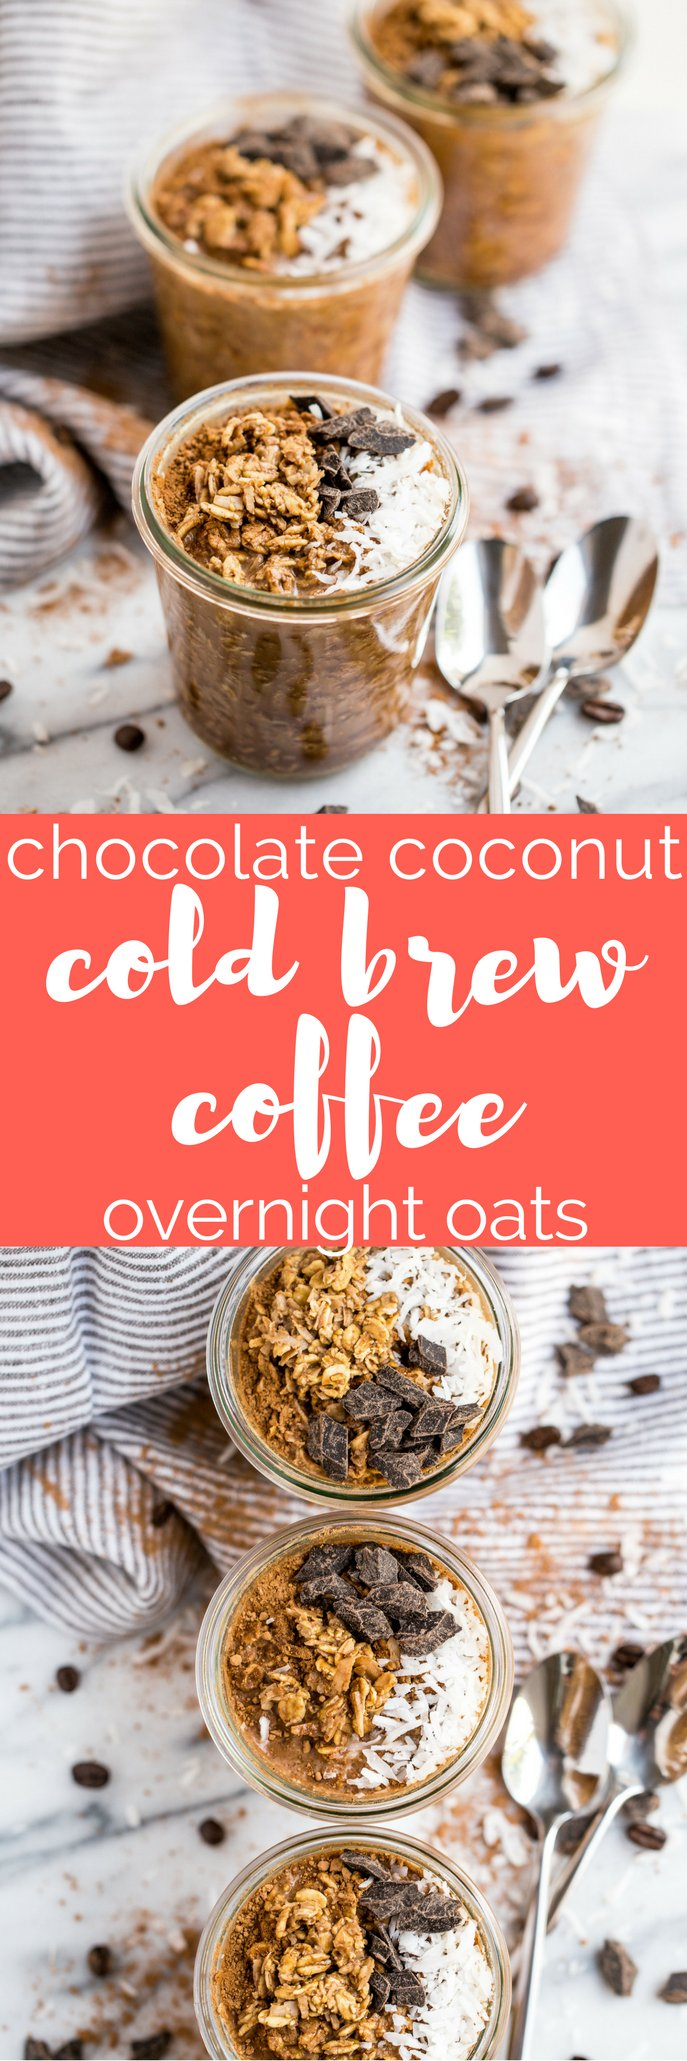 not your average overnight oats! these chocolate coconut cold brew overnight oats do double duty as a healthy on-the-go breakfast & a jolt of caffeine! #playswellwithbutter #coldbrew #overnightoats #healthybreakfast #breakfastrecipe #easybreakfast #oatmeal